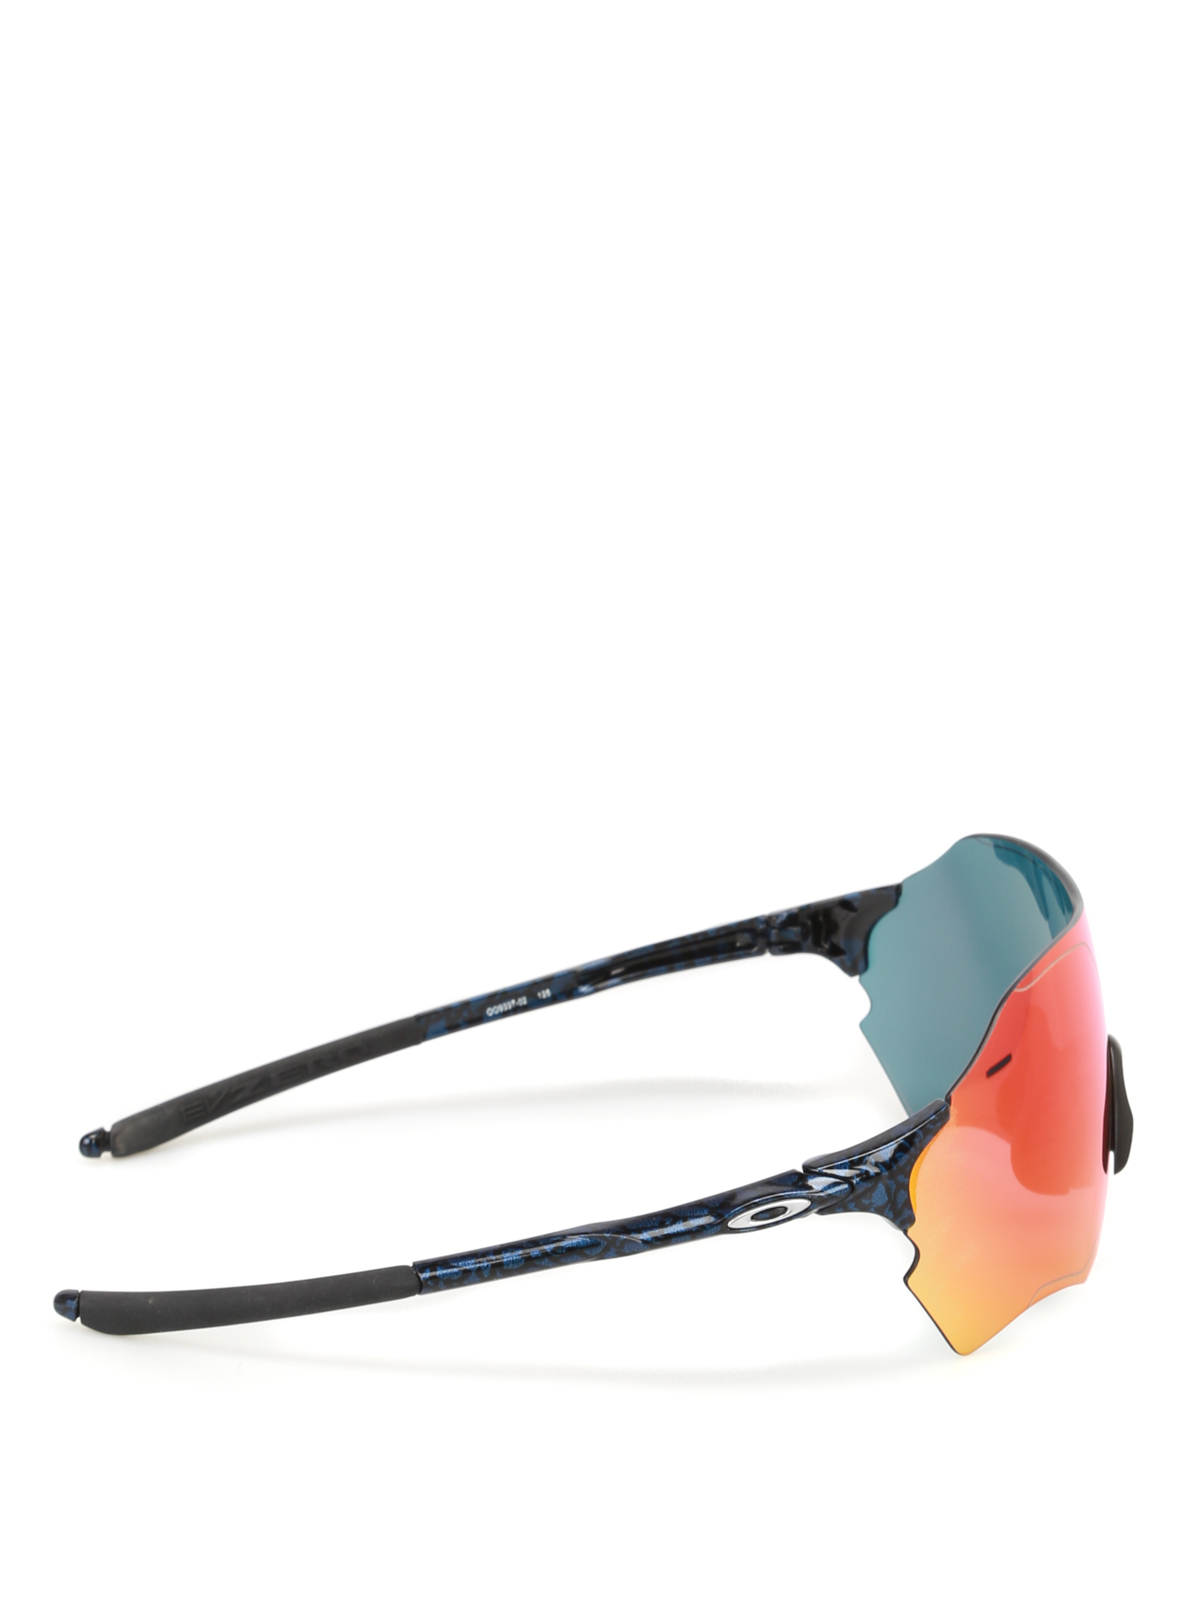 2dc33ec49fe discount code for oakley oo9313 evzero path sunglasses 4064b ba4b0   discount code for oakley sunglasses online evzero range asia fit glasses  650a9 4a63d